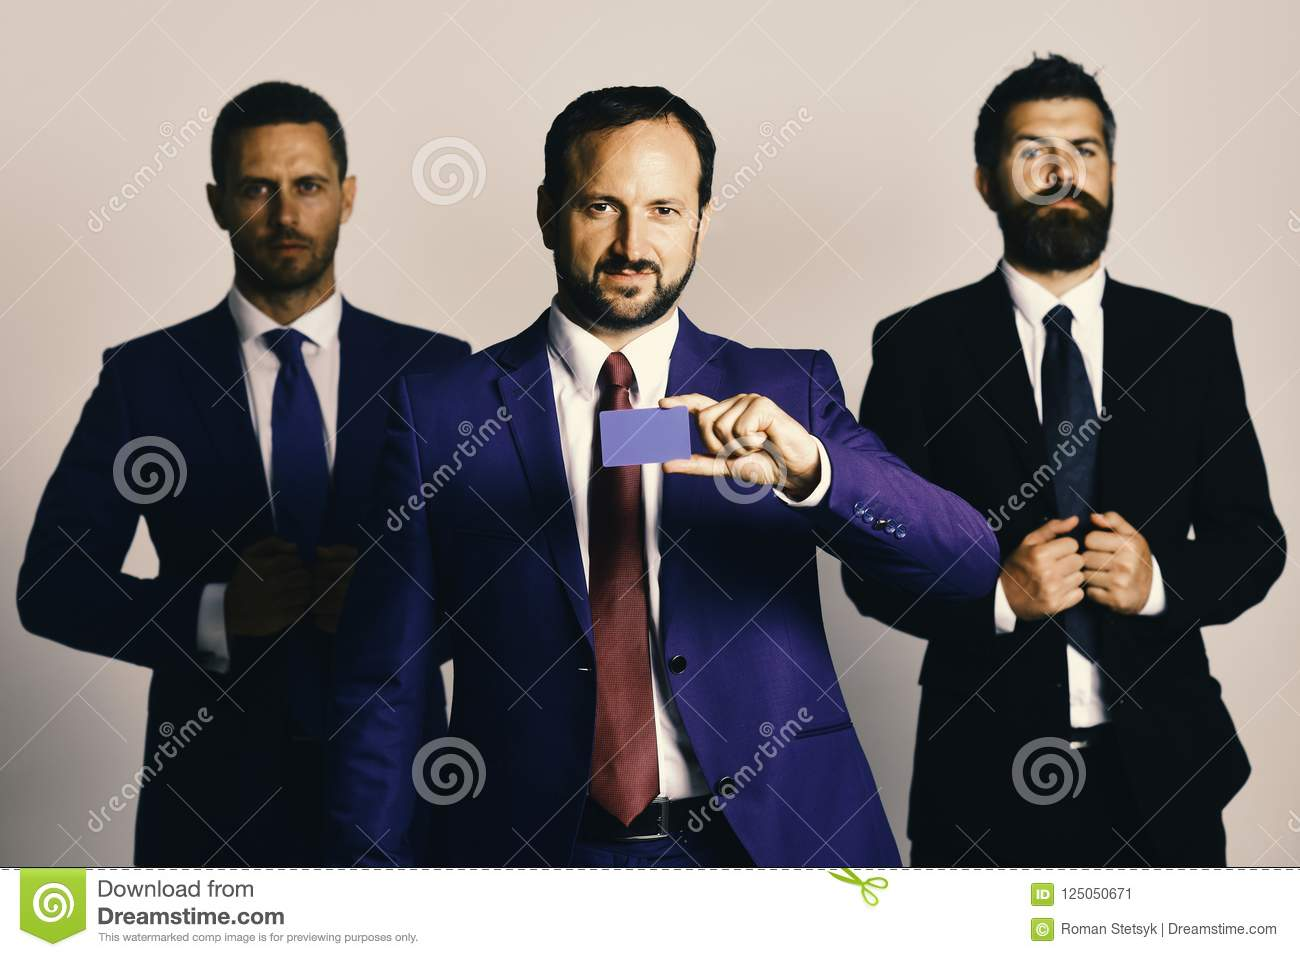 Argument And Business Concept Businessmen Wear Smart Suits And Ties